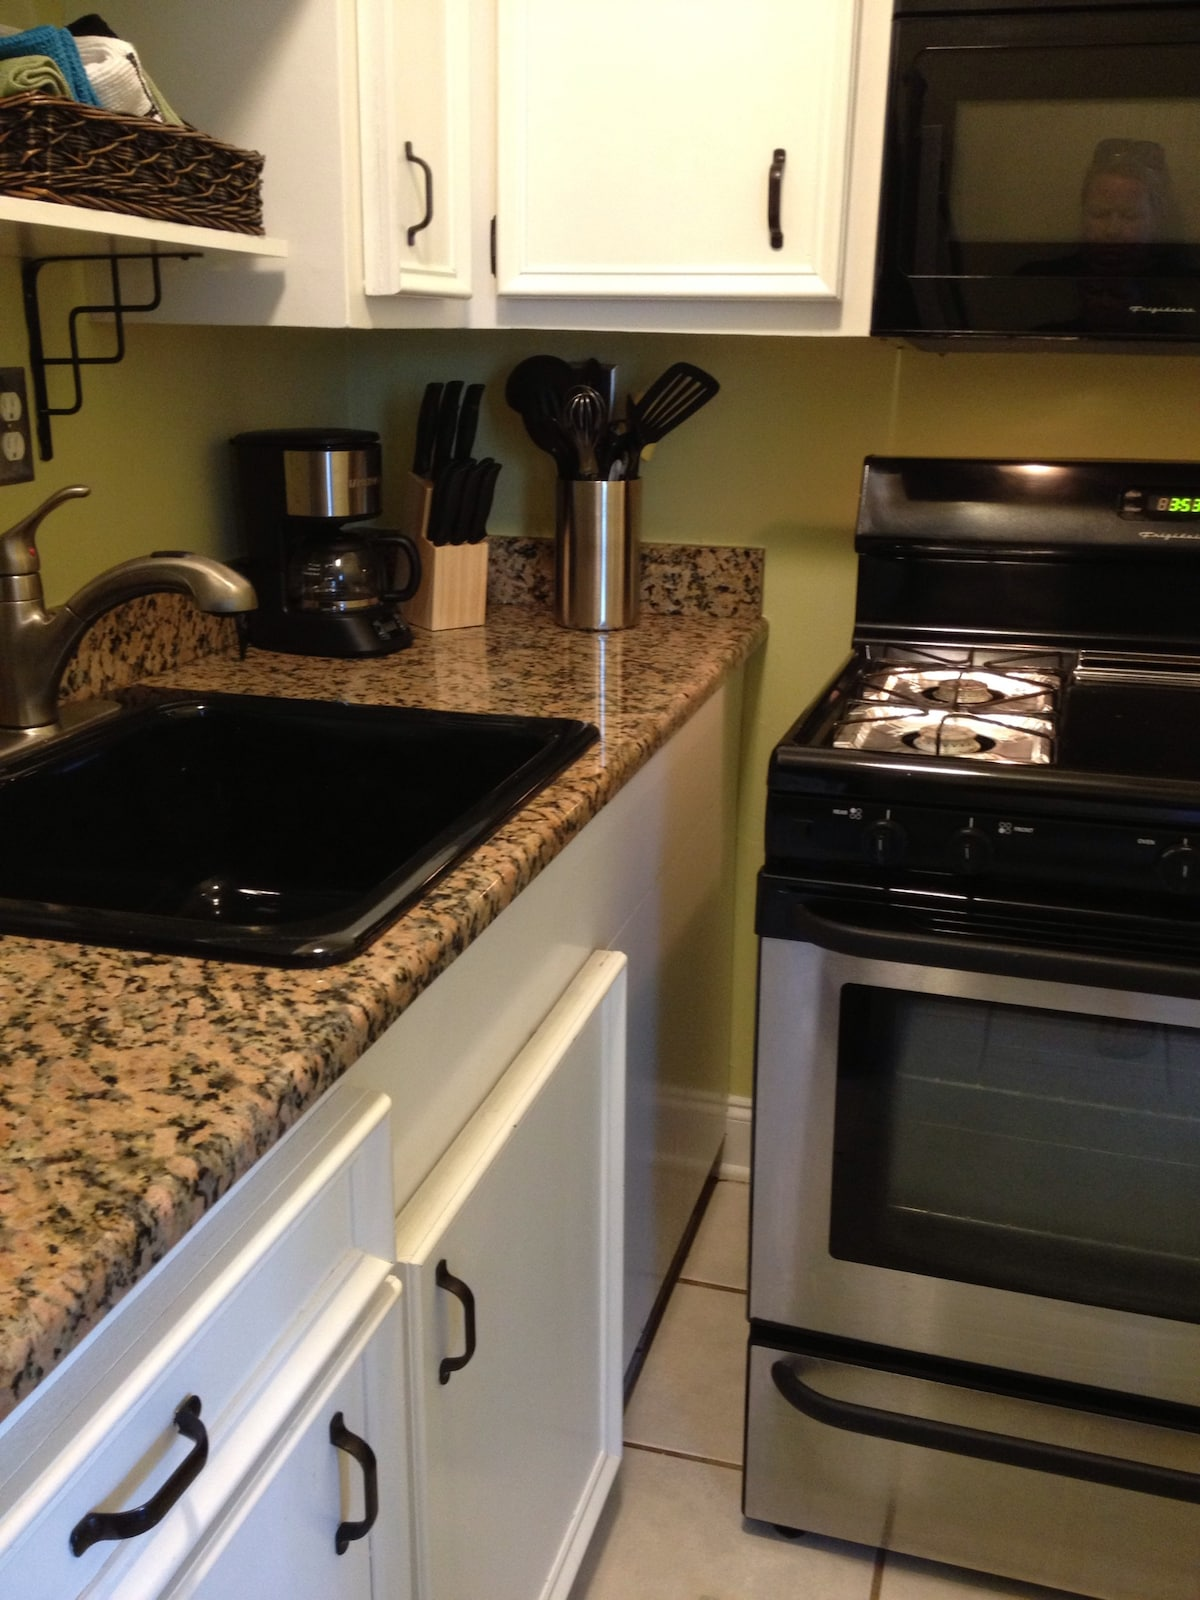 Stainless steel appliances, granite counter tops.